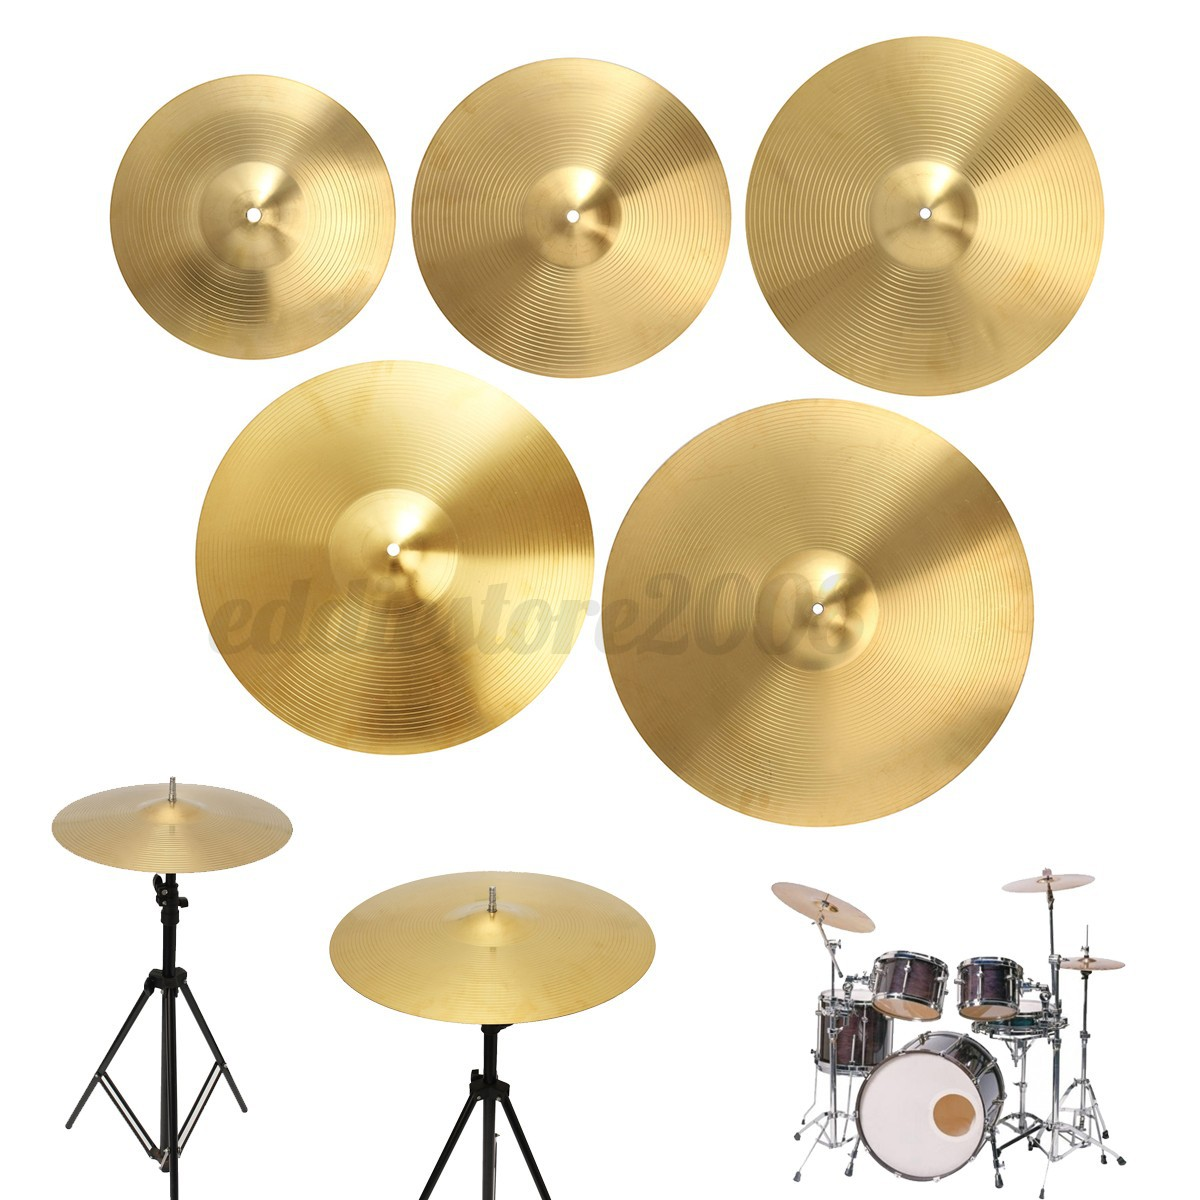 12 39 39 14 39 39 16 39 39 18 39 39 20 39 39 splash hi hat crash ride cymbal drummer brass music ebay. Black Bedroom Furniture Sets. Home Design Ideas